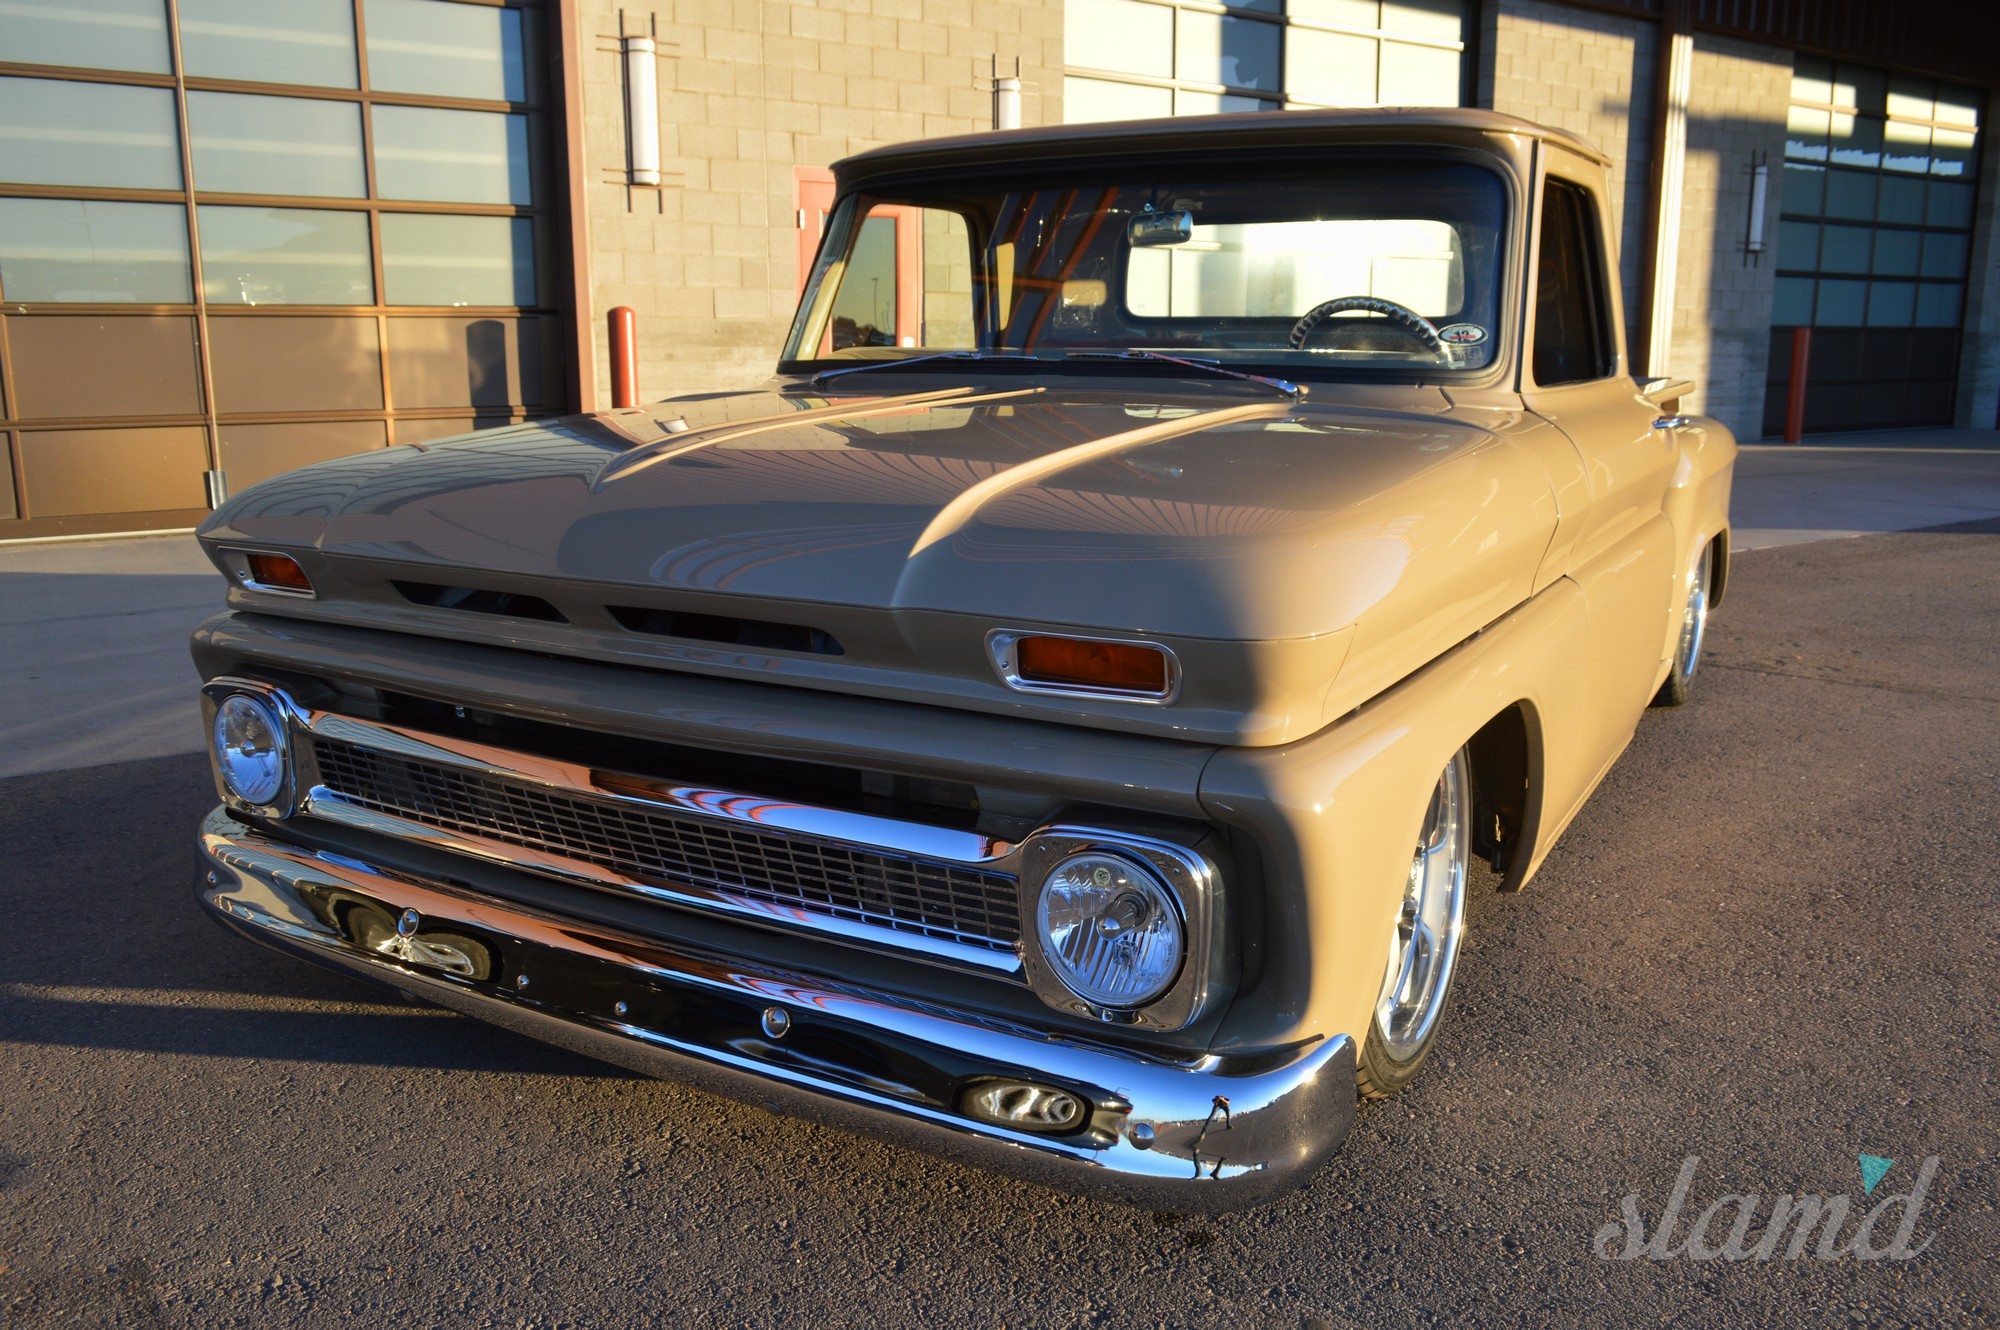 hight resolution of through highs and lows thick and thin one constant for johnson family could fall back on was the classic chevrolet pickup that seemed to run on their